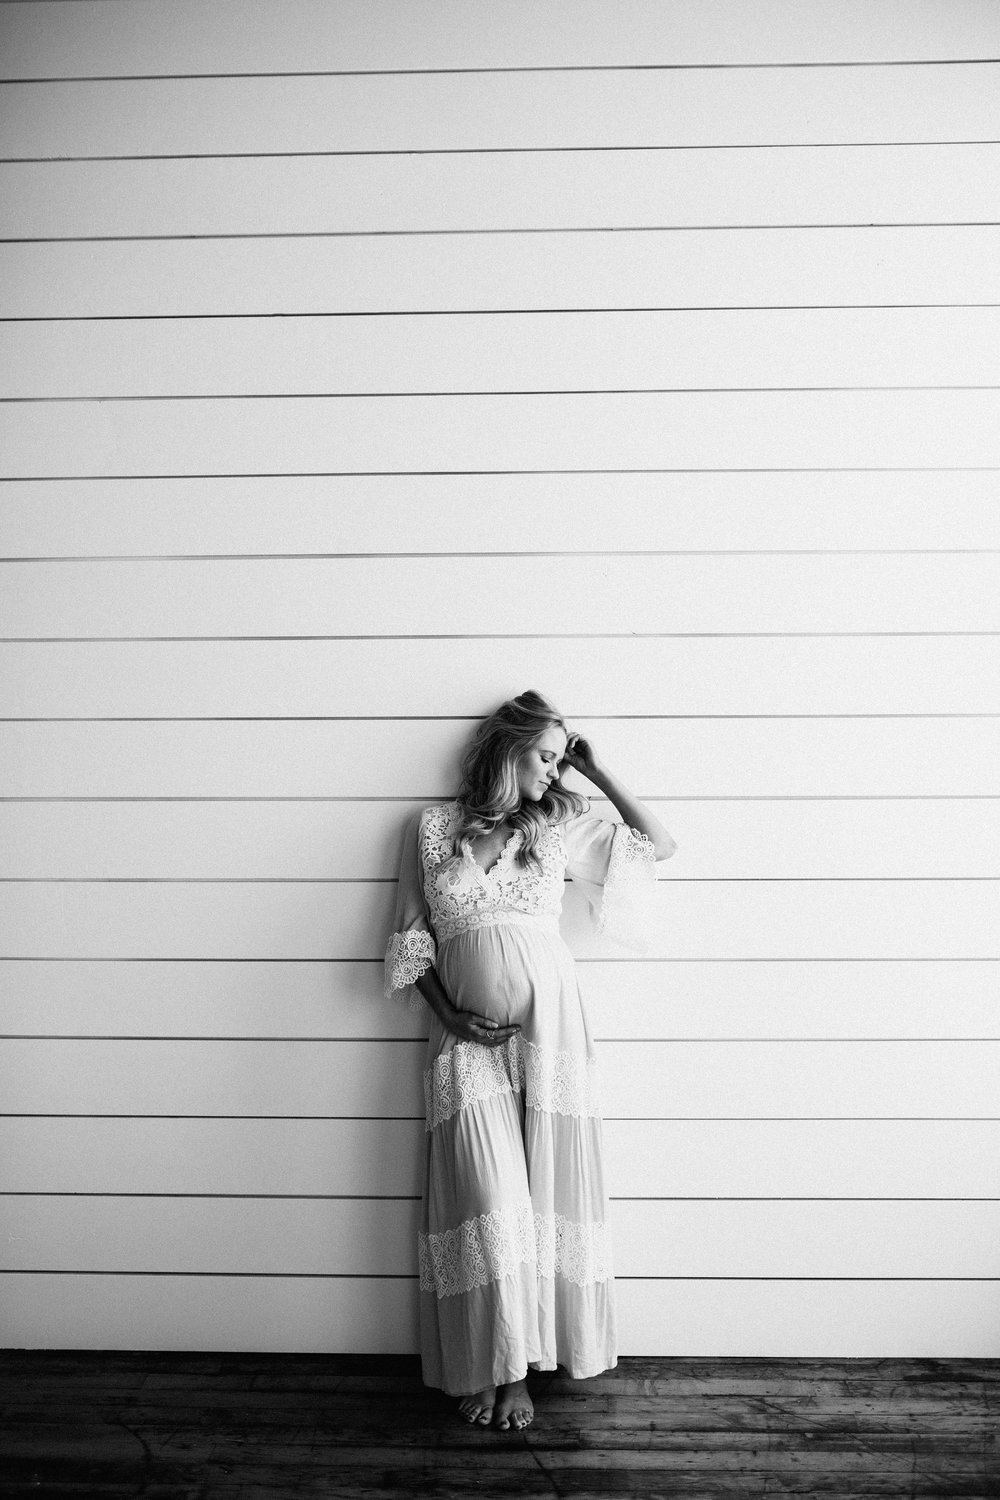 Katie-Posey-Maternity-Session-2018-Kansas-City-MO-Jesse-Salter-Photography-24.jpg